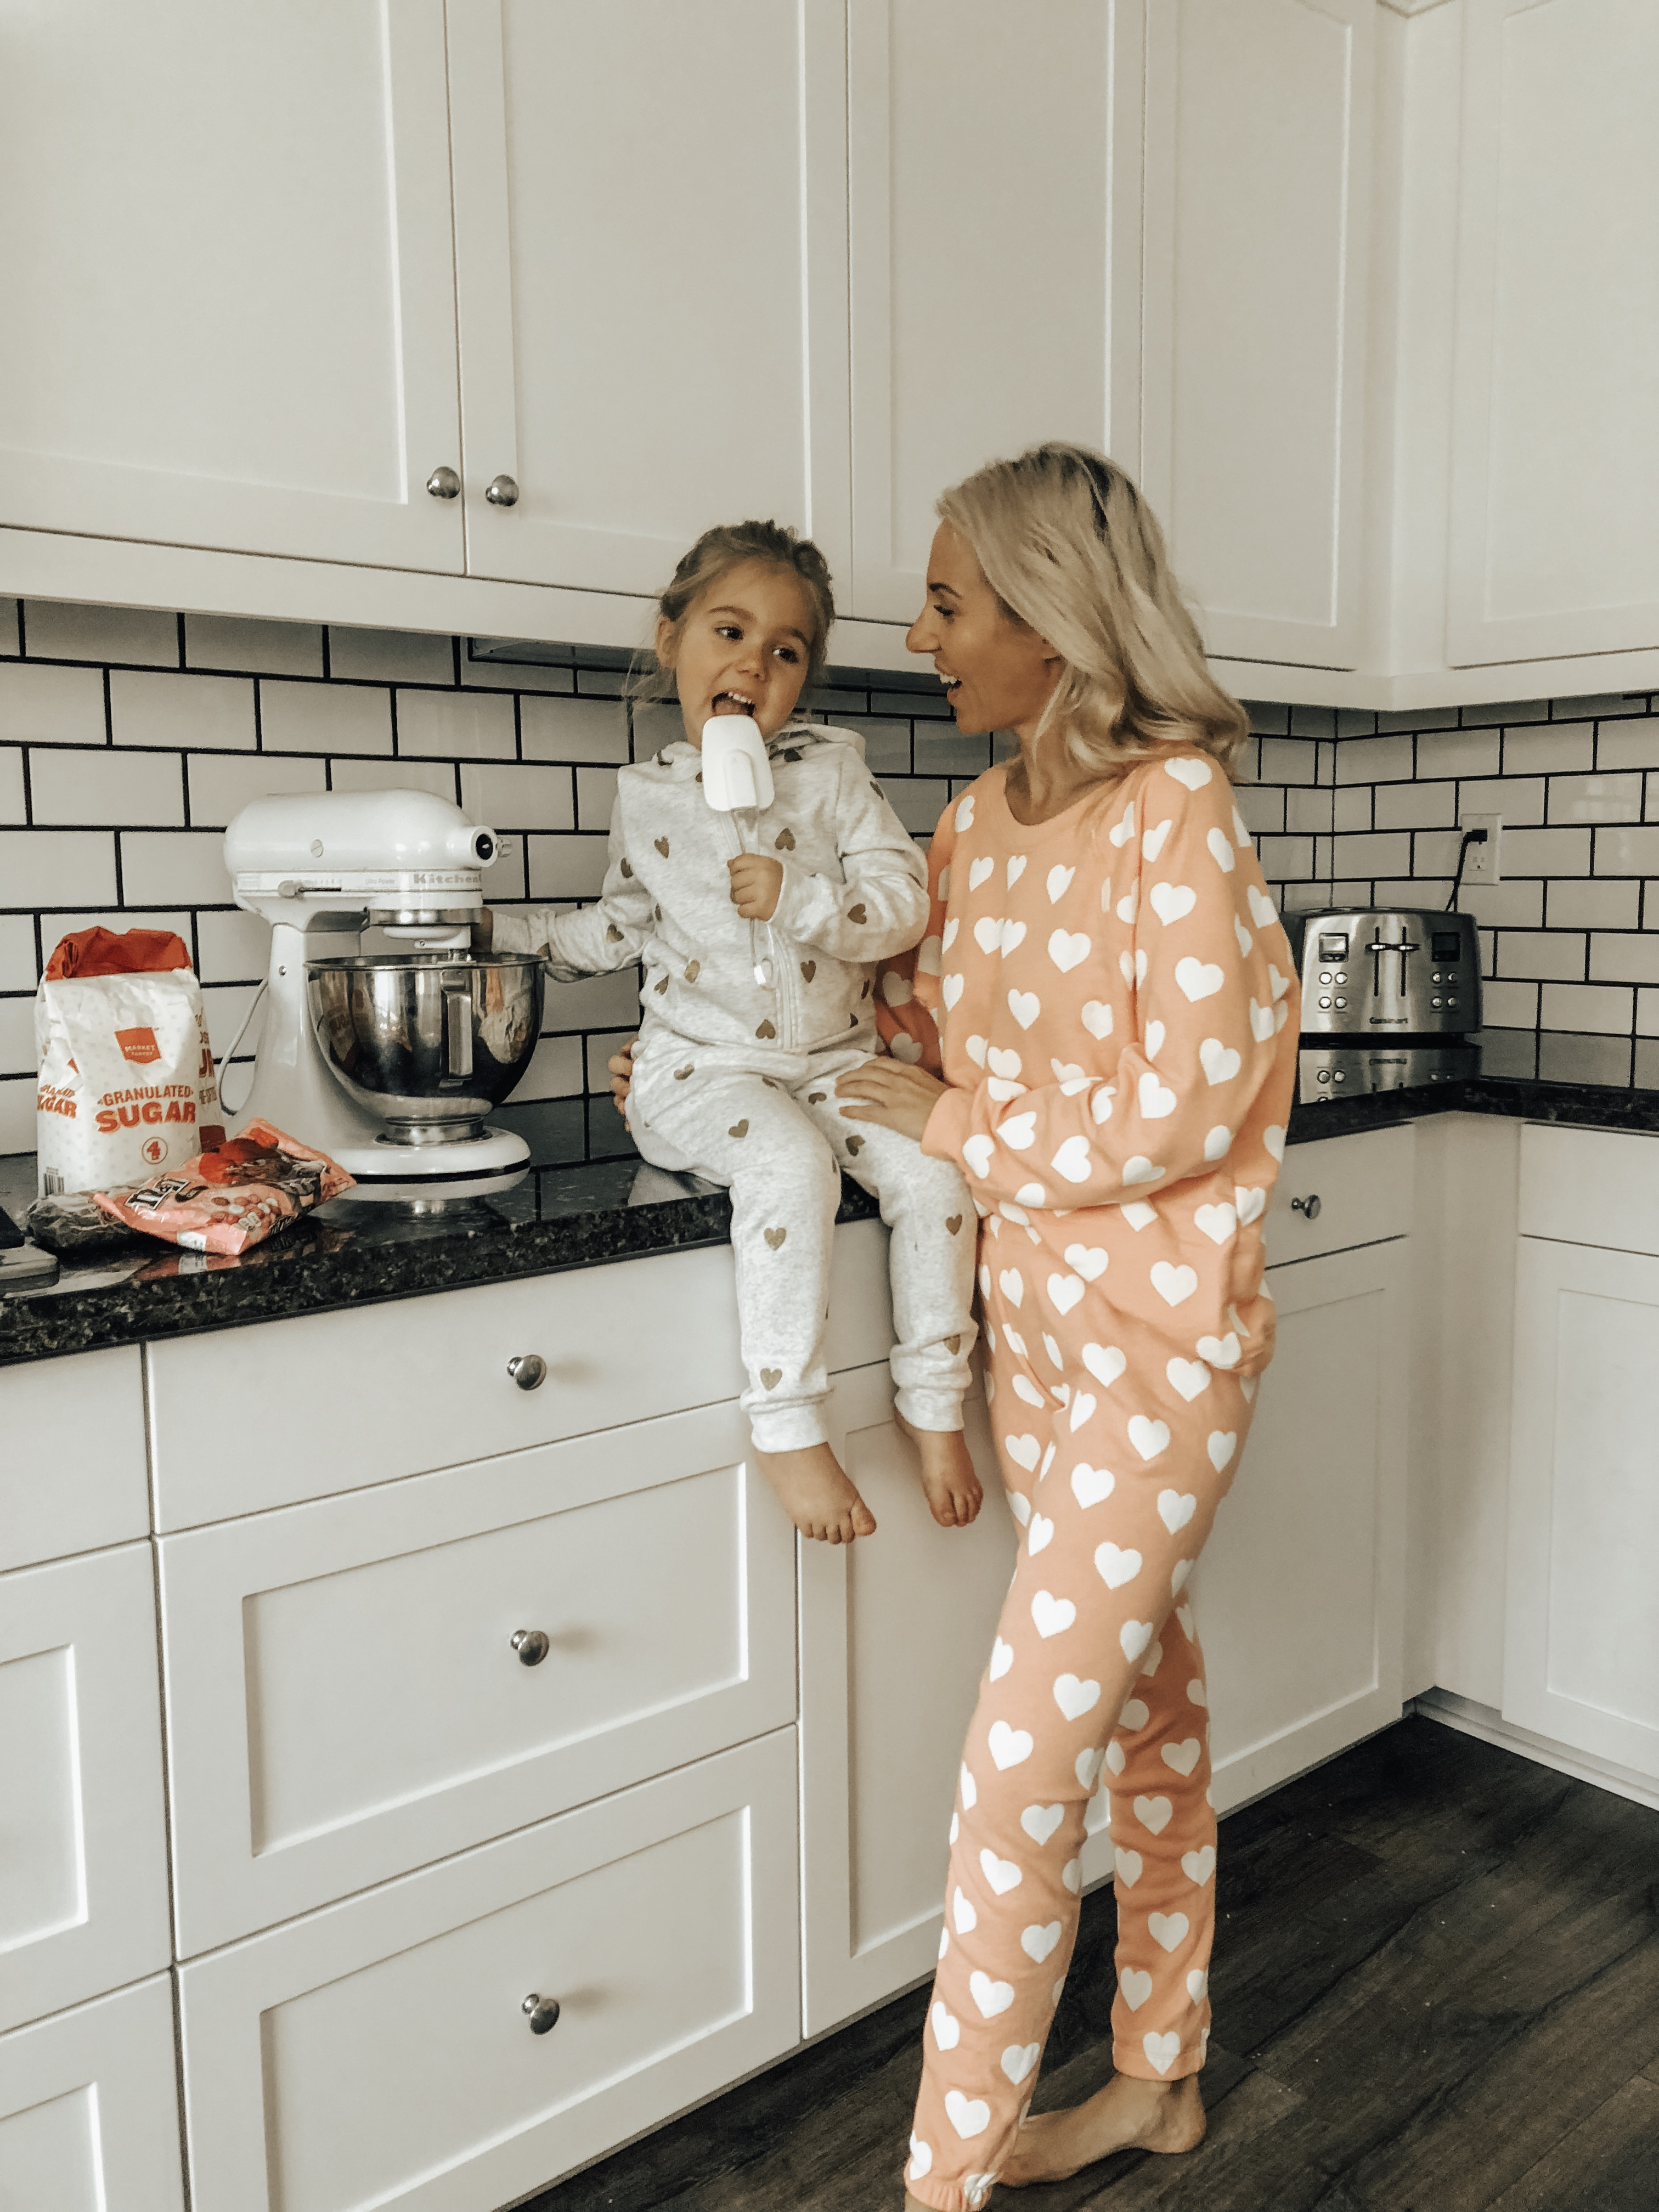 COZY & CASUAL VALENTINES AT HOME- Jaclyn De Leon Style + mommy and me making cookies + valentines inspired outfits + heart matching sets + pink + mini me + mom style + matching pajamas + at home making cookies + in the kitchen + matching outfits + mom life + kid style + nordstrom rack + h&m style